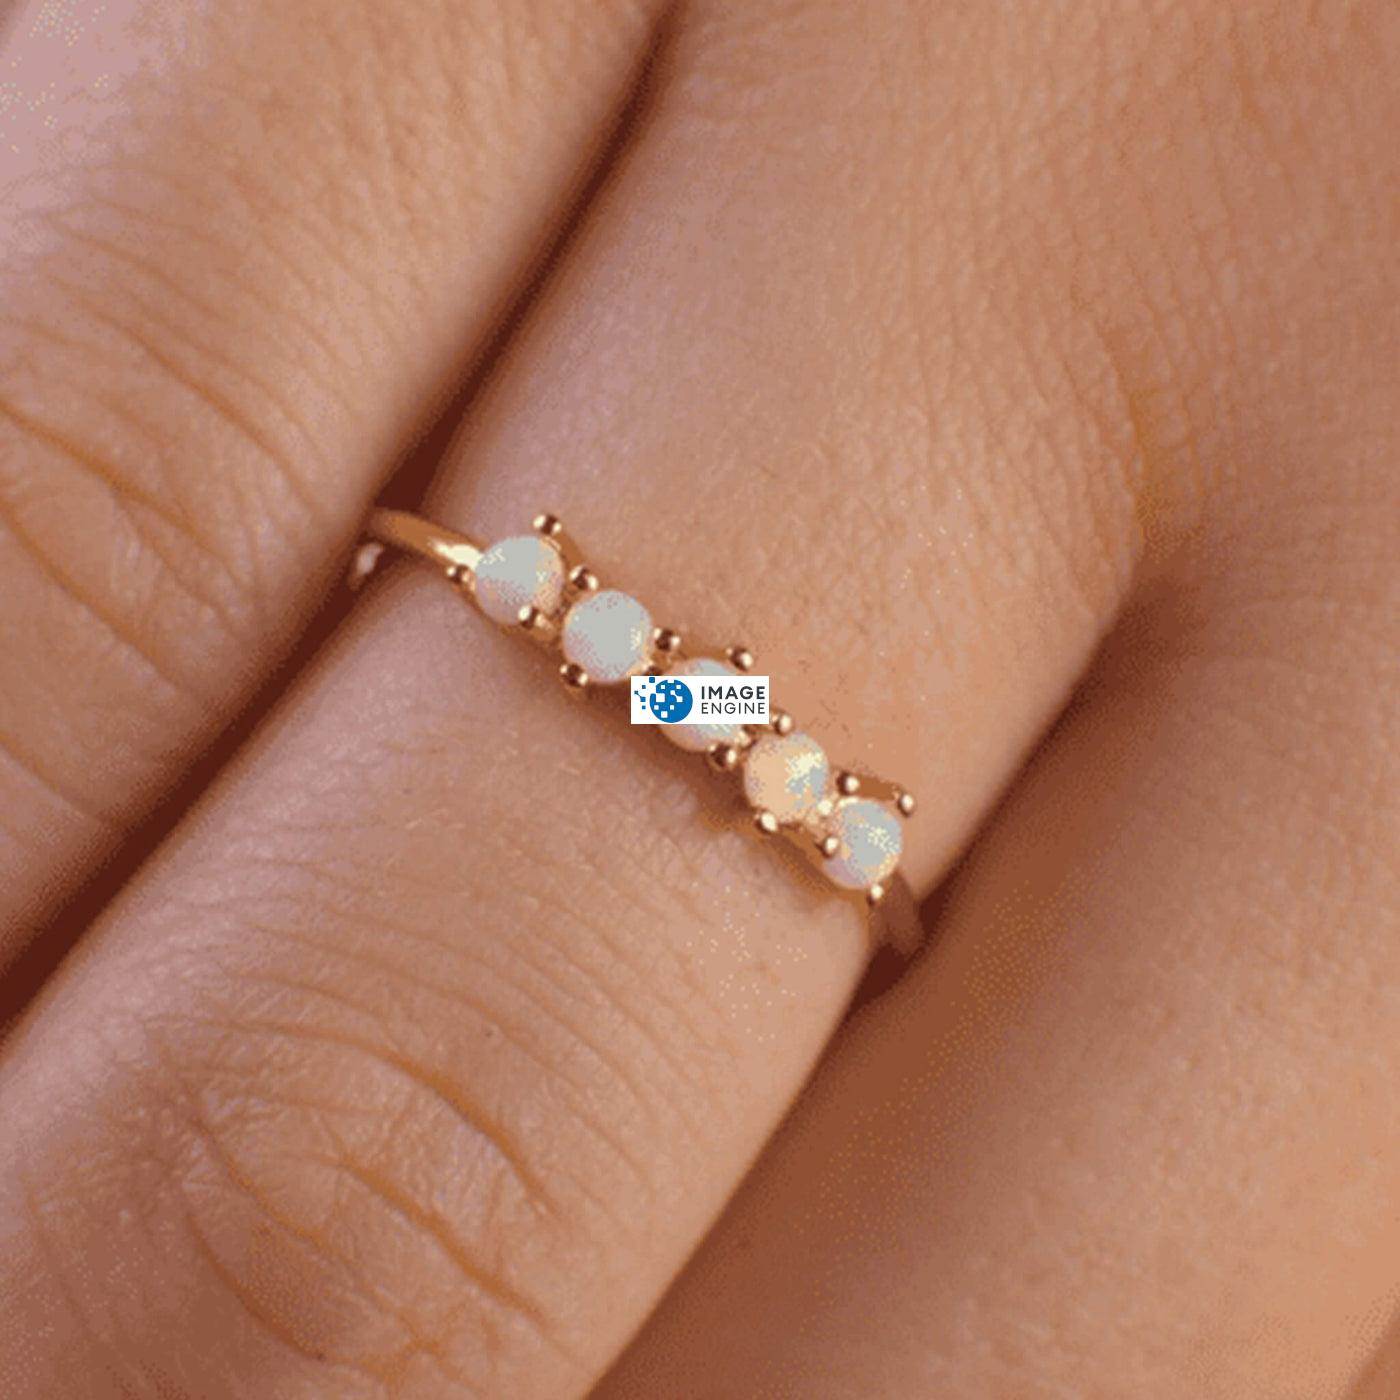 Samantha Simple Dots 5 Opal Ring - On Ring Finger Zoomed In - 18K Rose Gold Vermeil